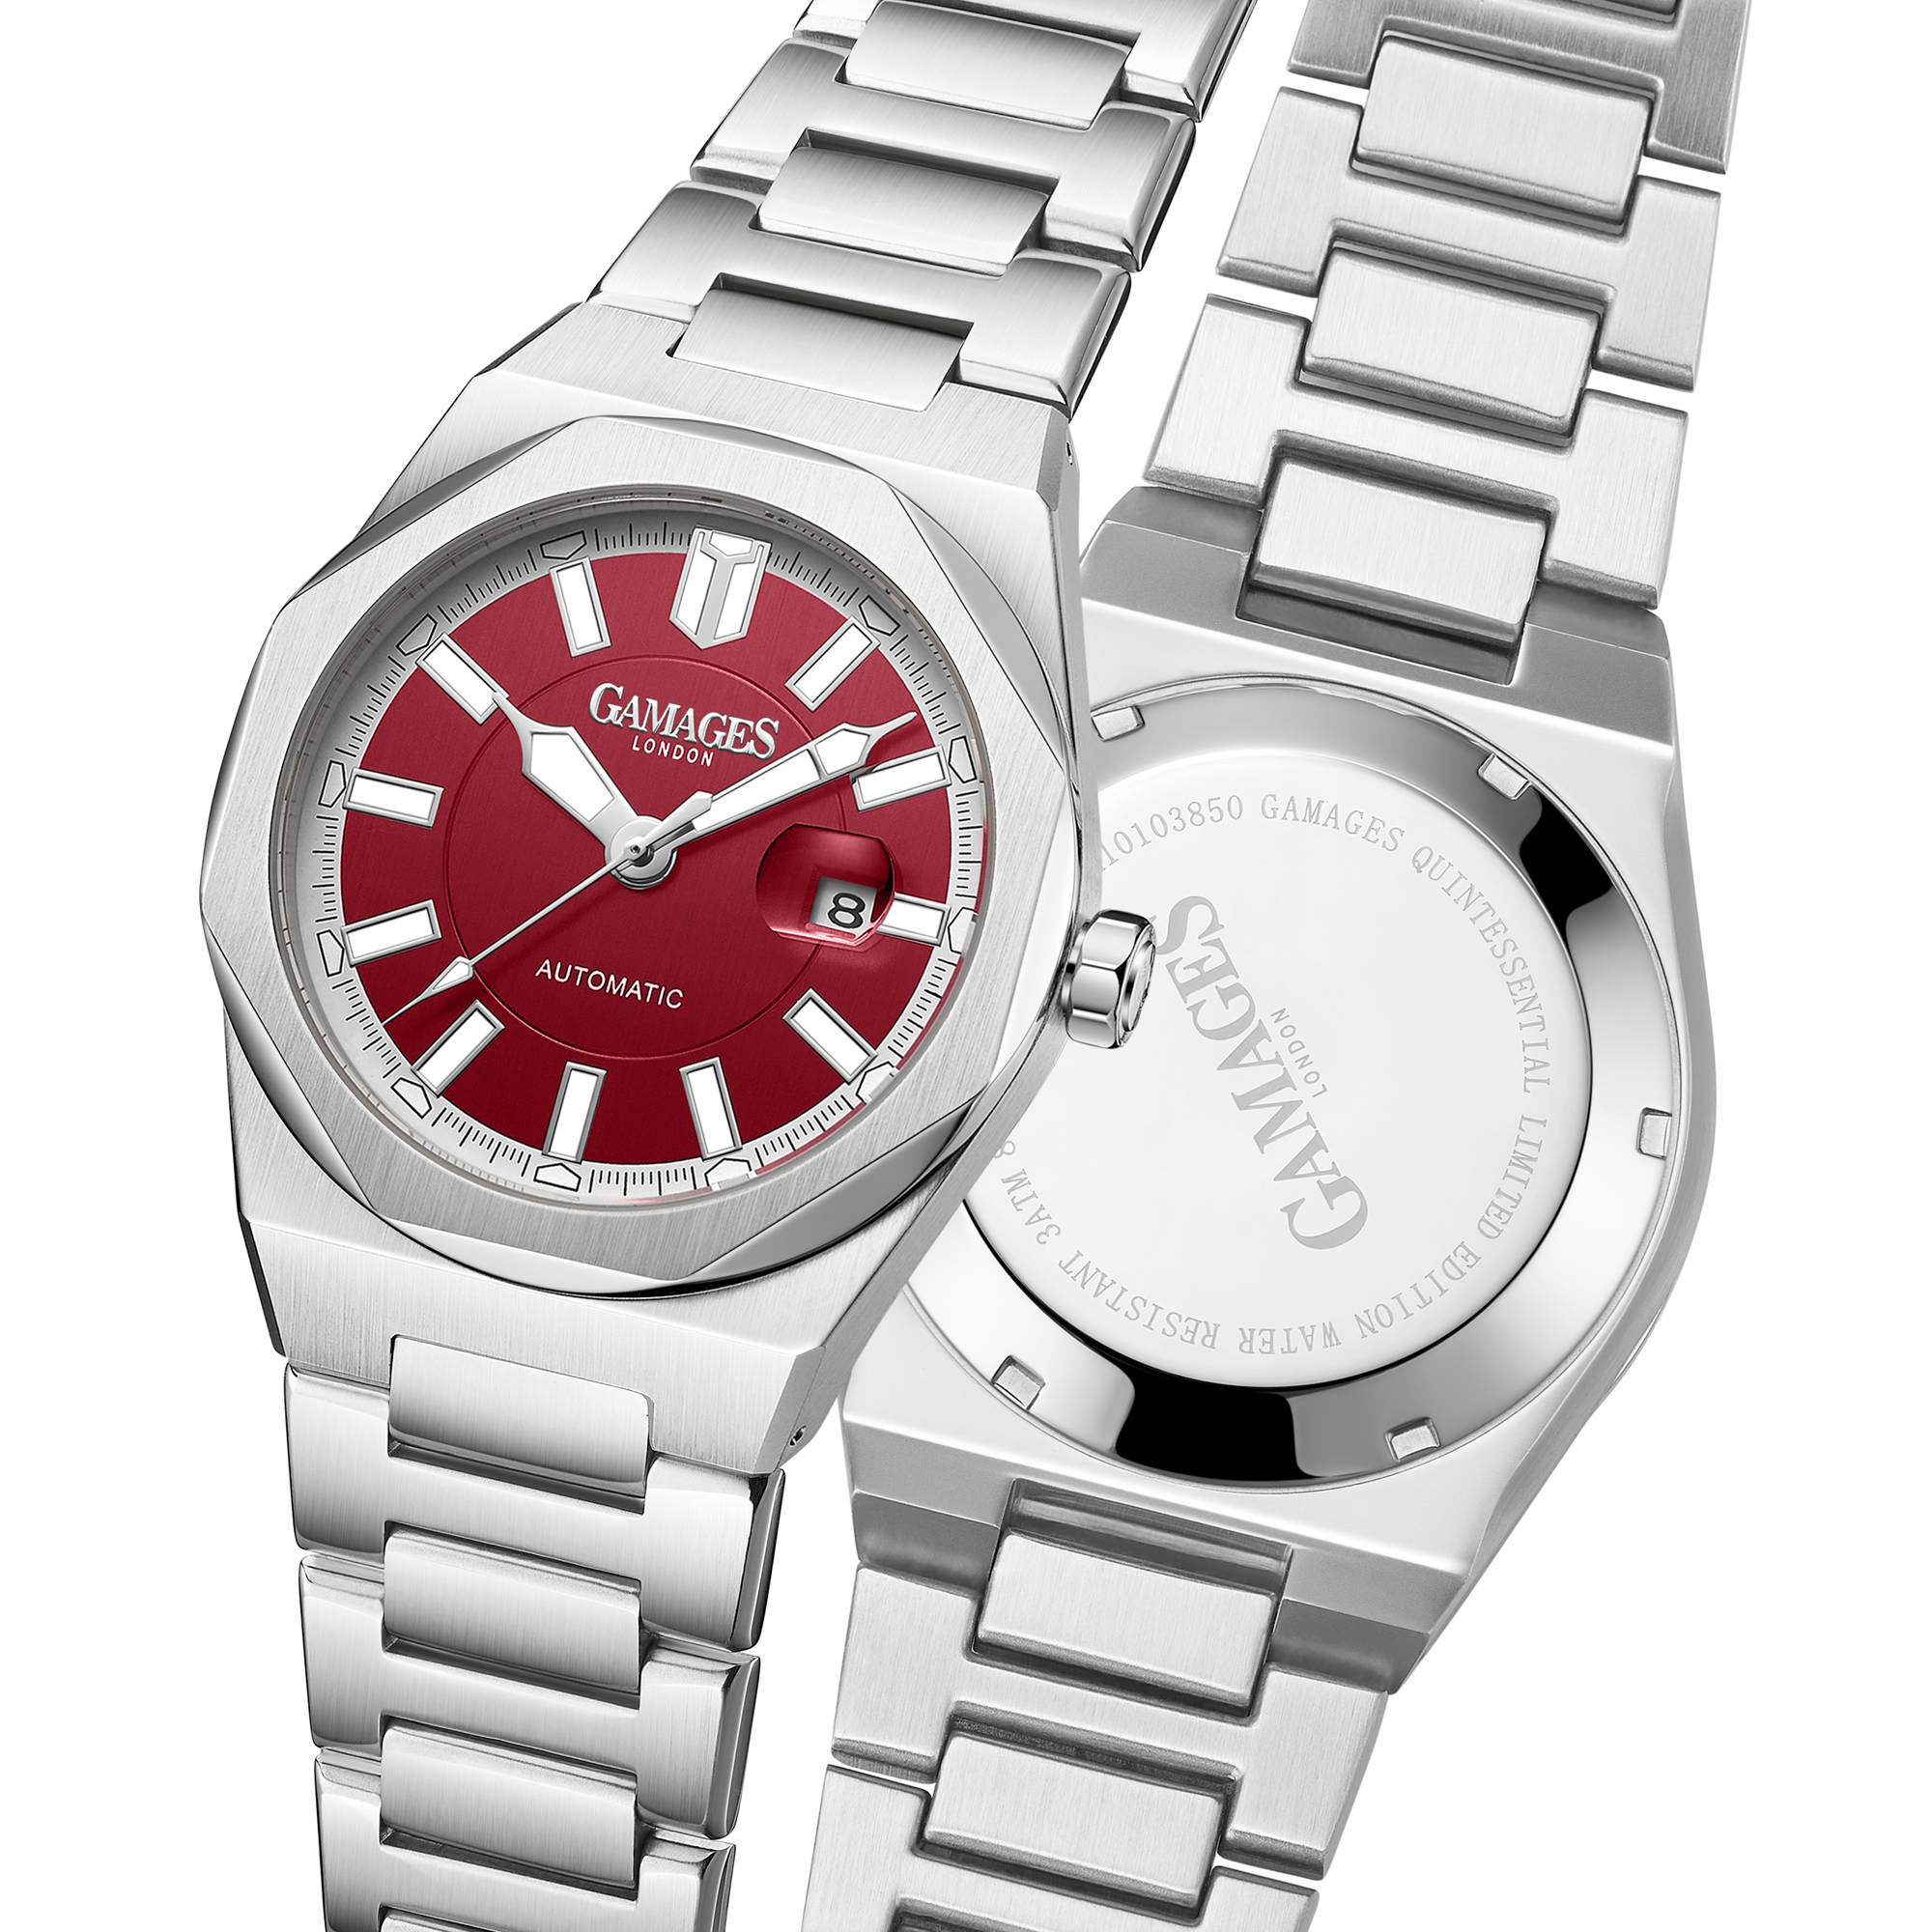 Ltd Edition Hand Assembled Gamages Quintessential Automatic Red – 5 Year Warranty & Free Delivery - Image 4 of 5